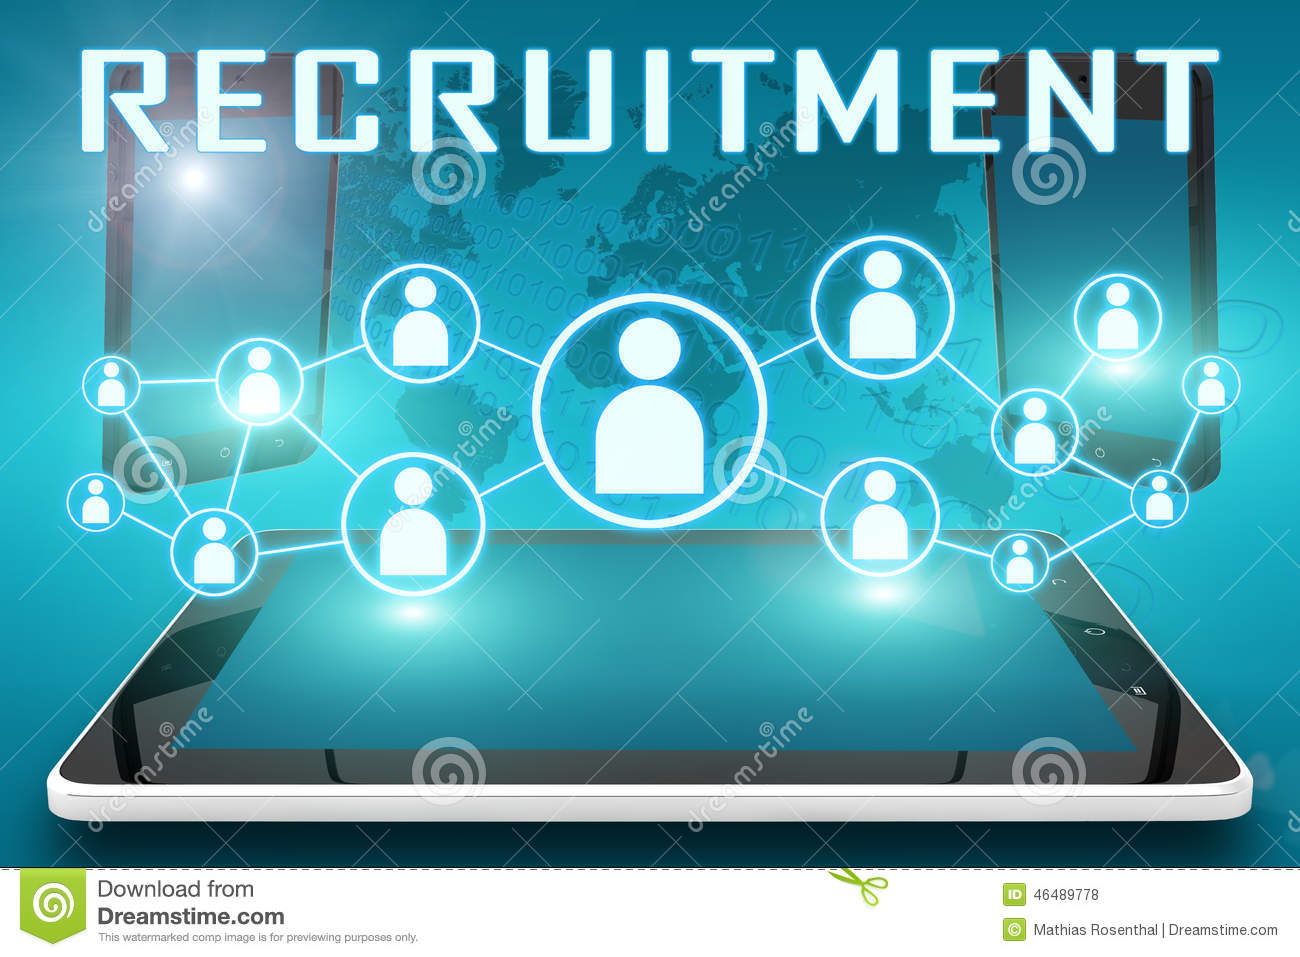 Recruitment - text illustration with social icons and tablet computer ...